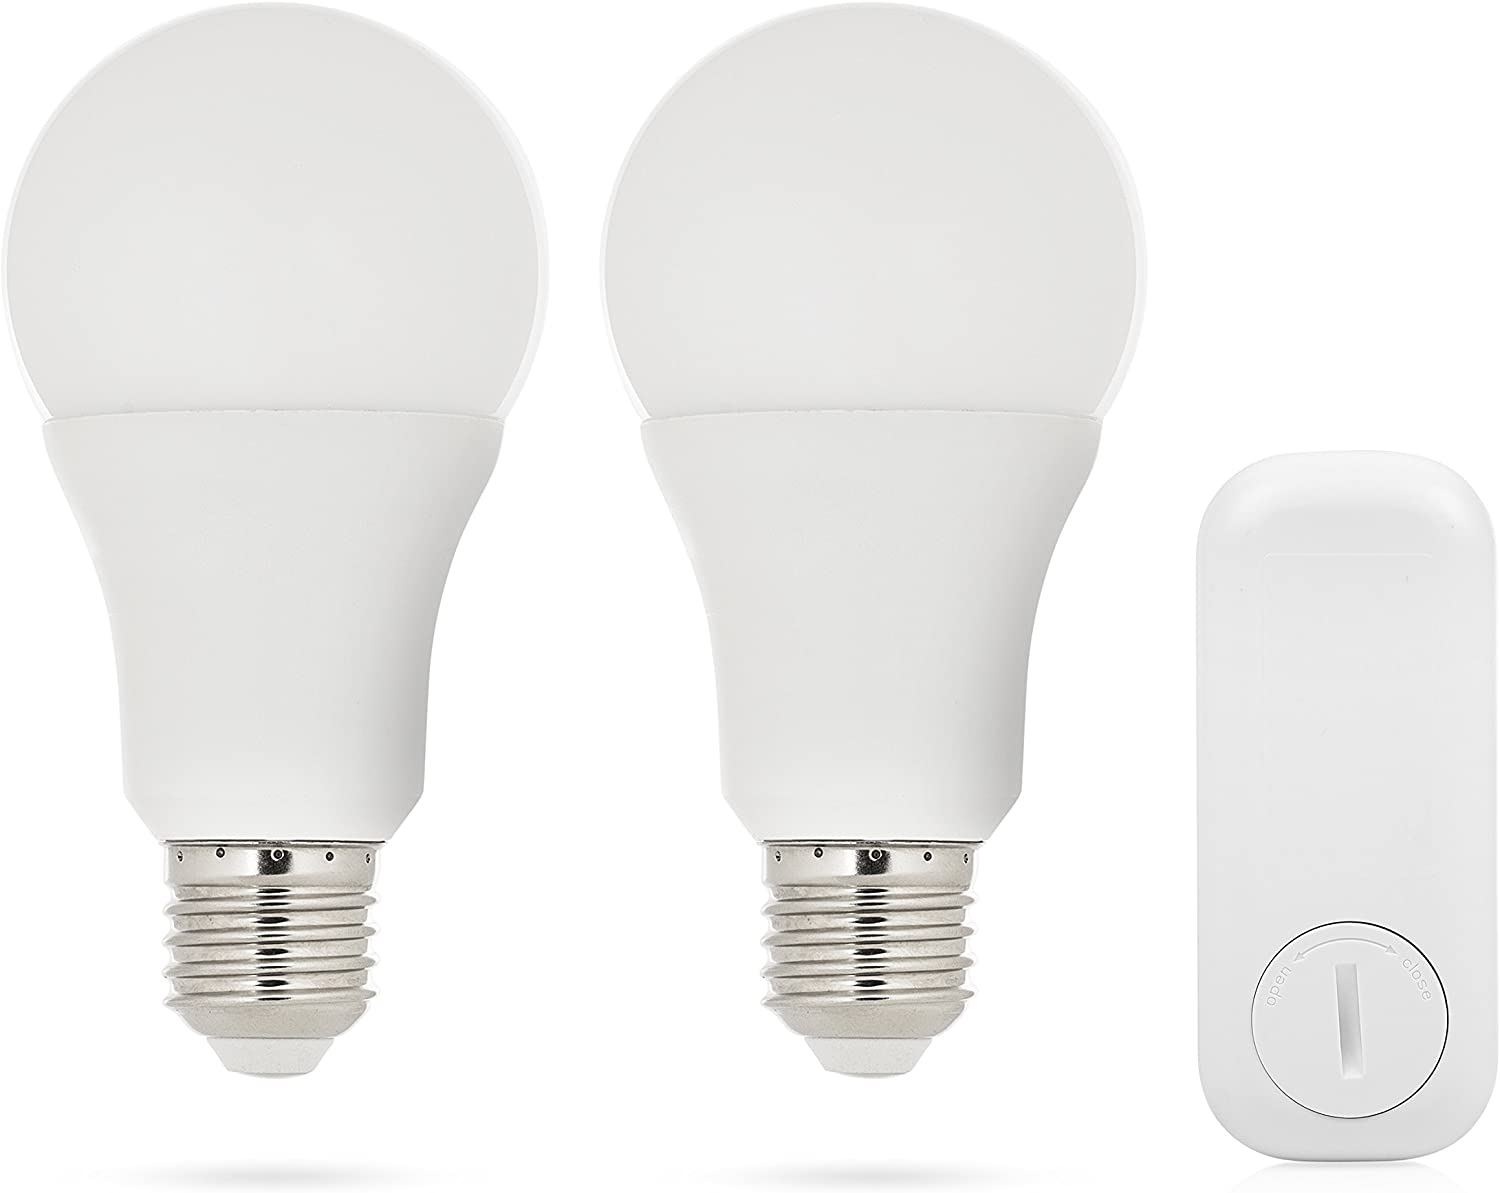 Smartwares SH4 Smart Bulb Set